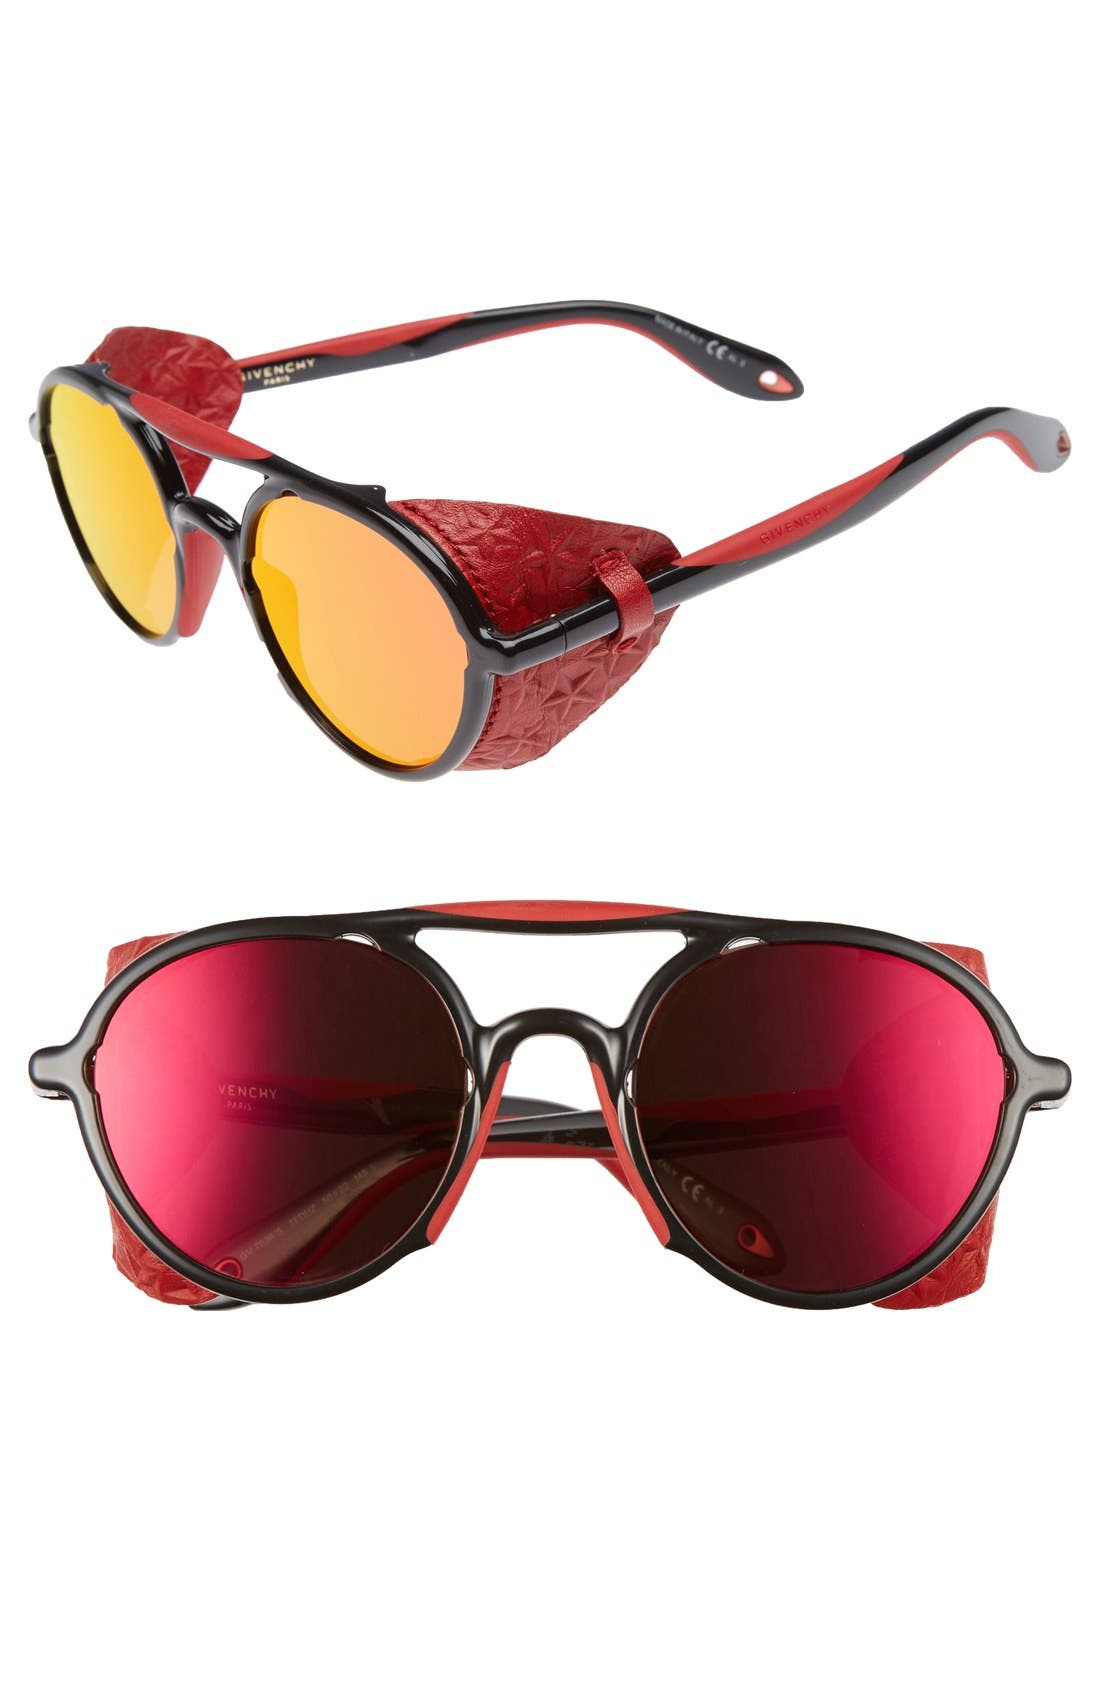 50mm Sunglasses,                             Main thumbnail 1, color,                             Black/ Red